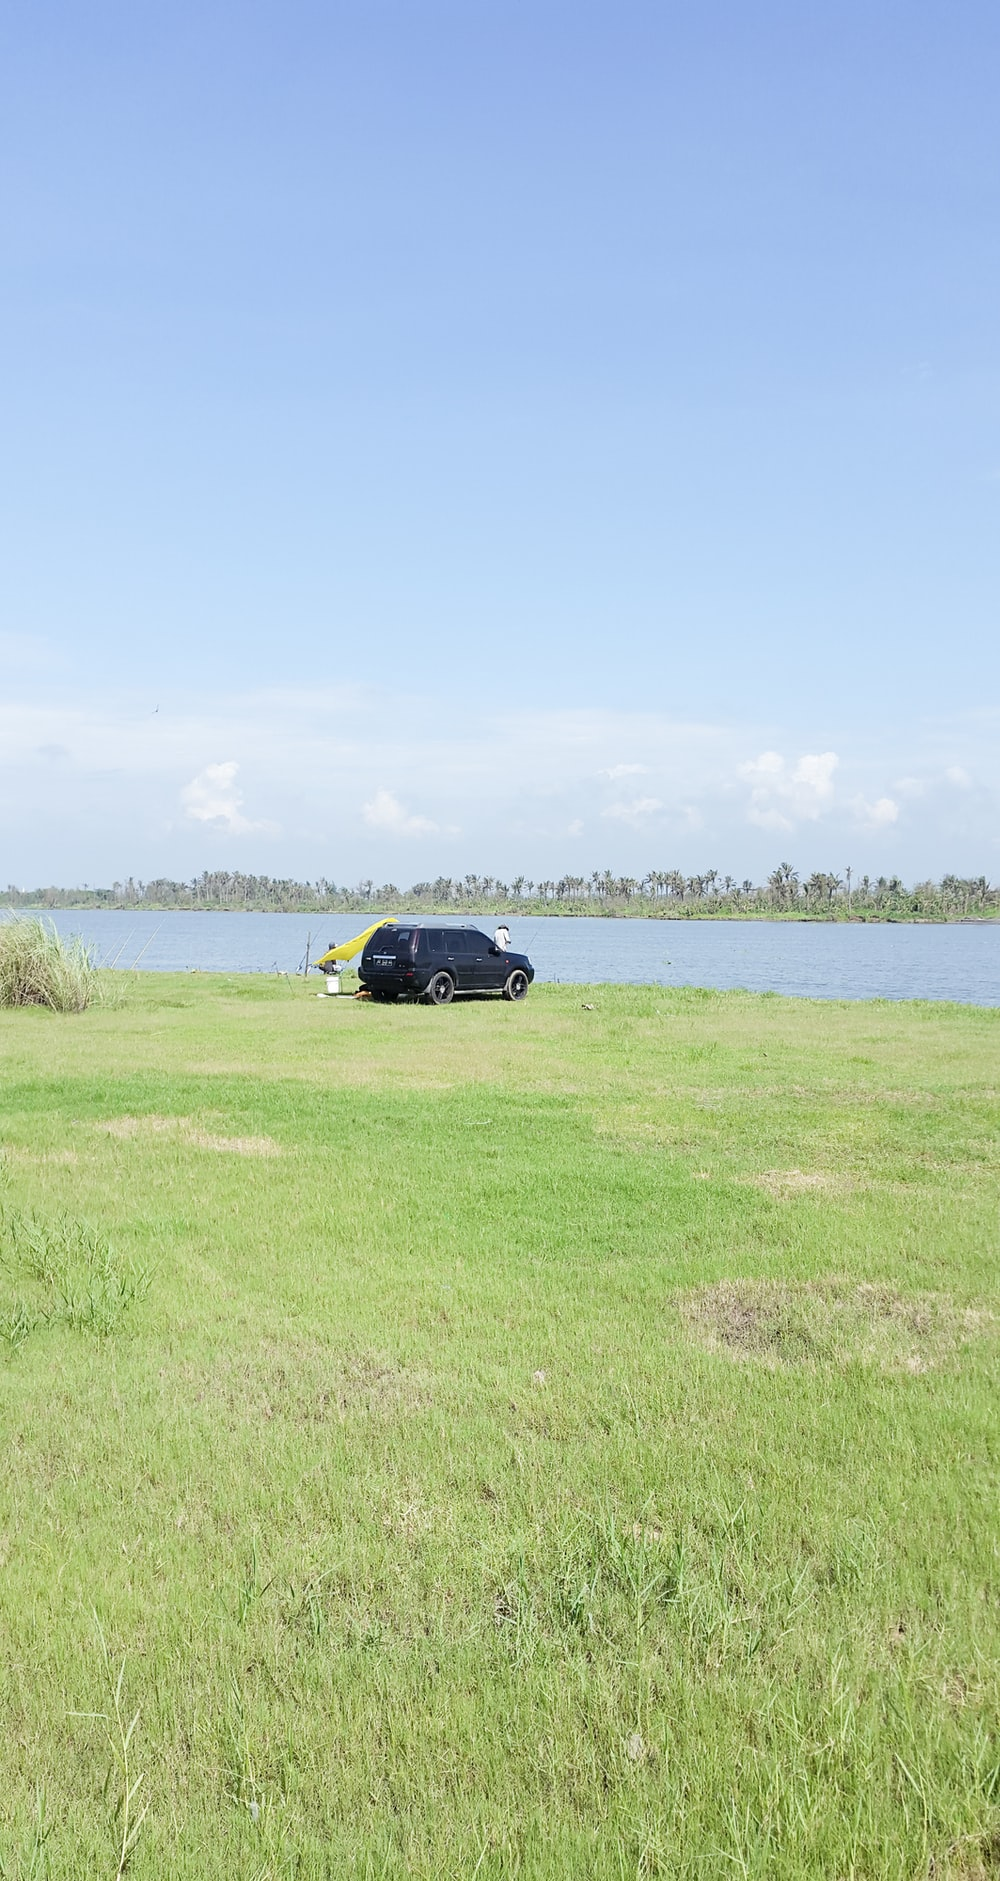 black car on green grass field near body of water during daytime